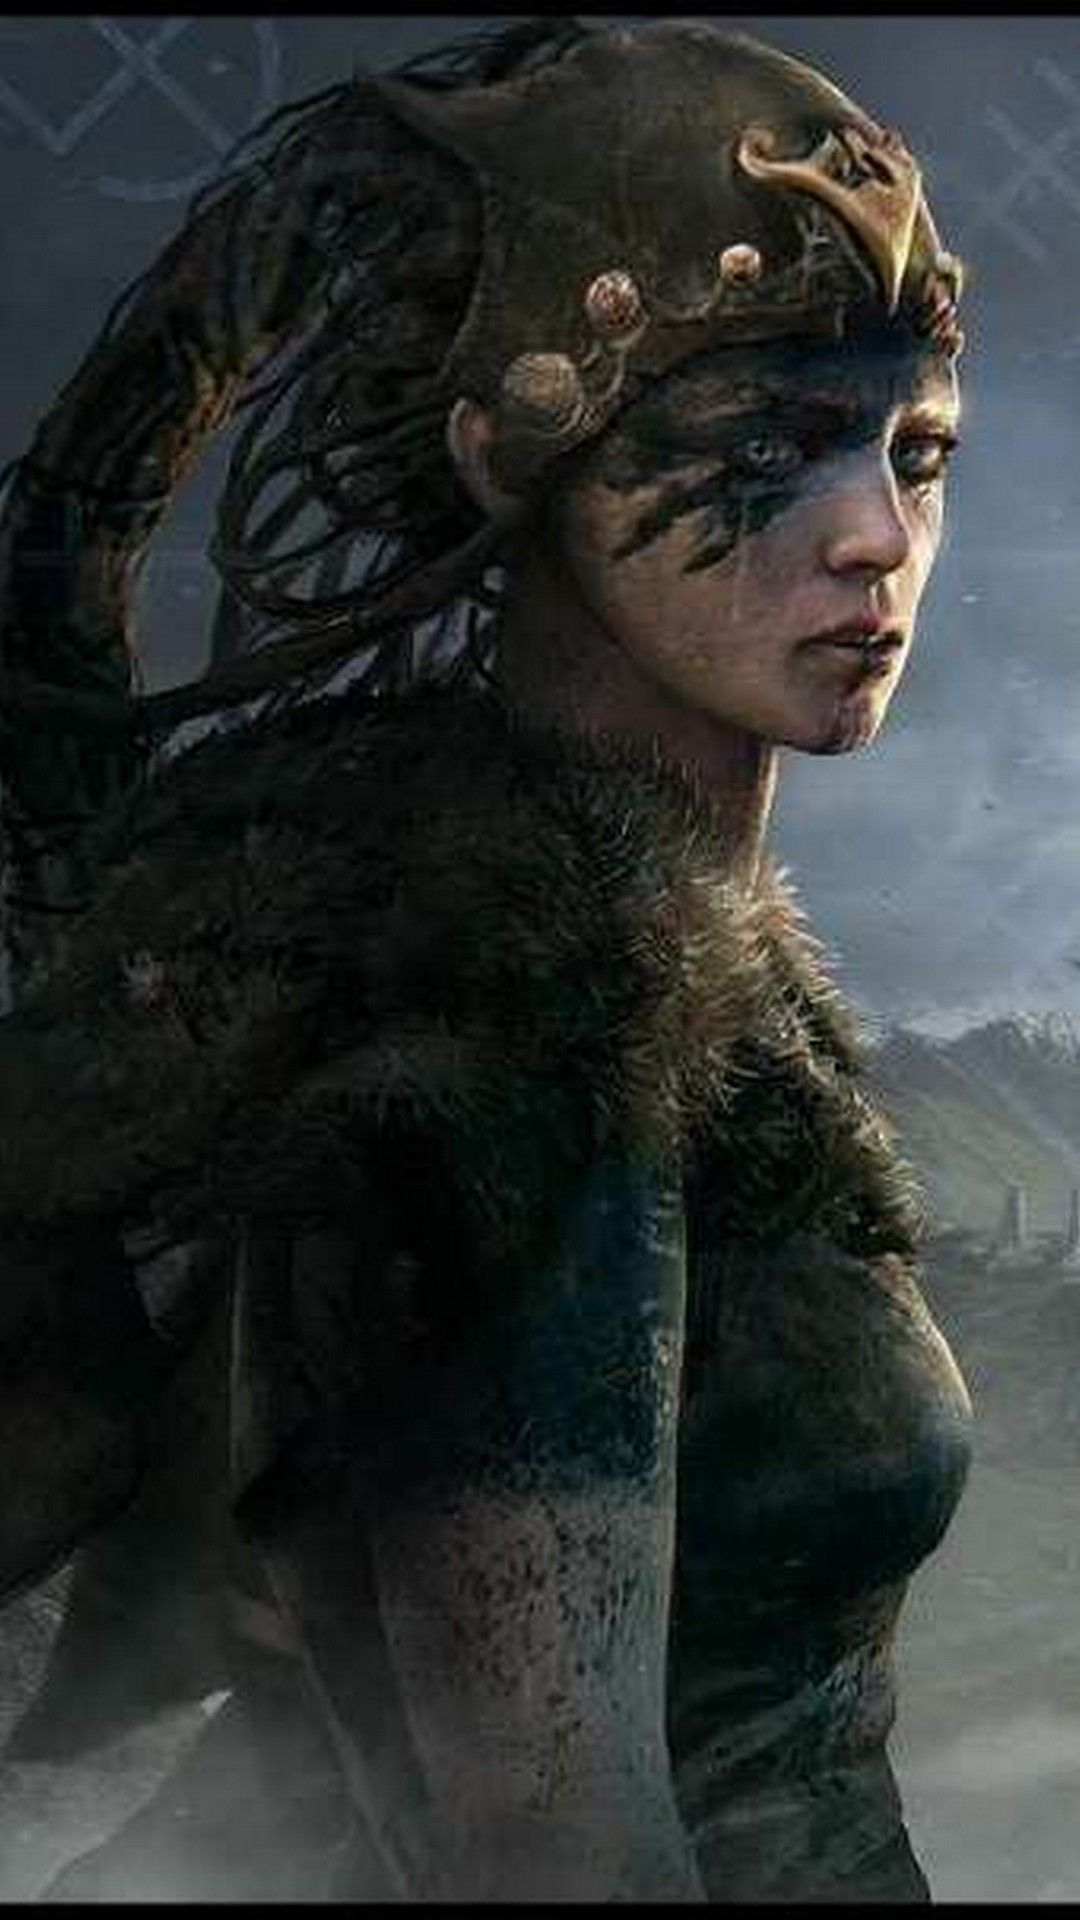 Hellblade senua 39 s sacrifice wallpaper for iphone x iphone wallpaper best iphone wallpapers - Sacrifice wallpaper ...